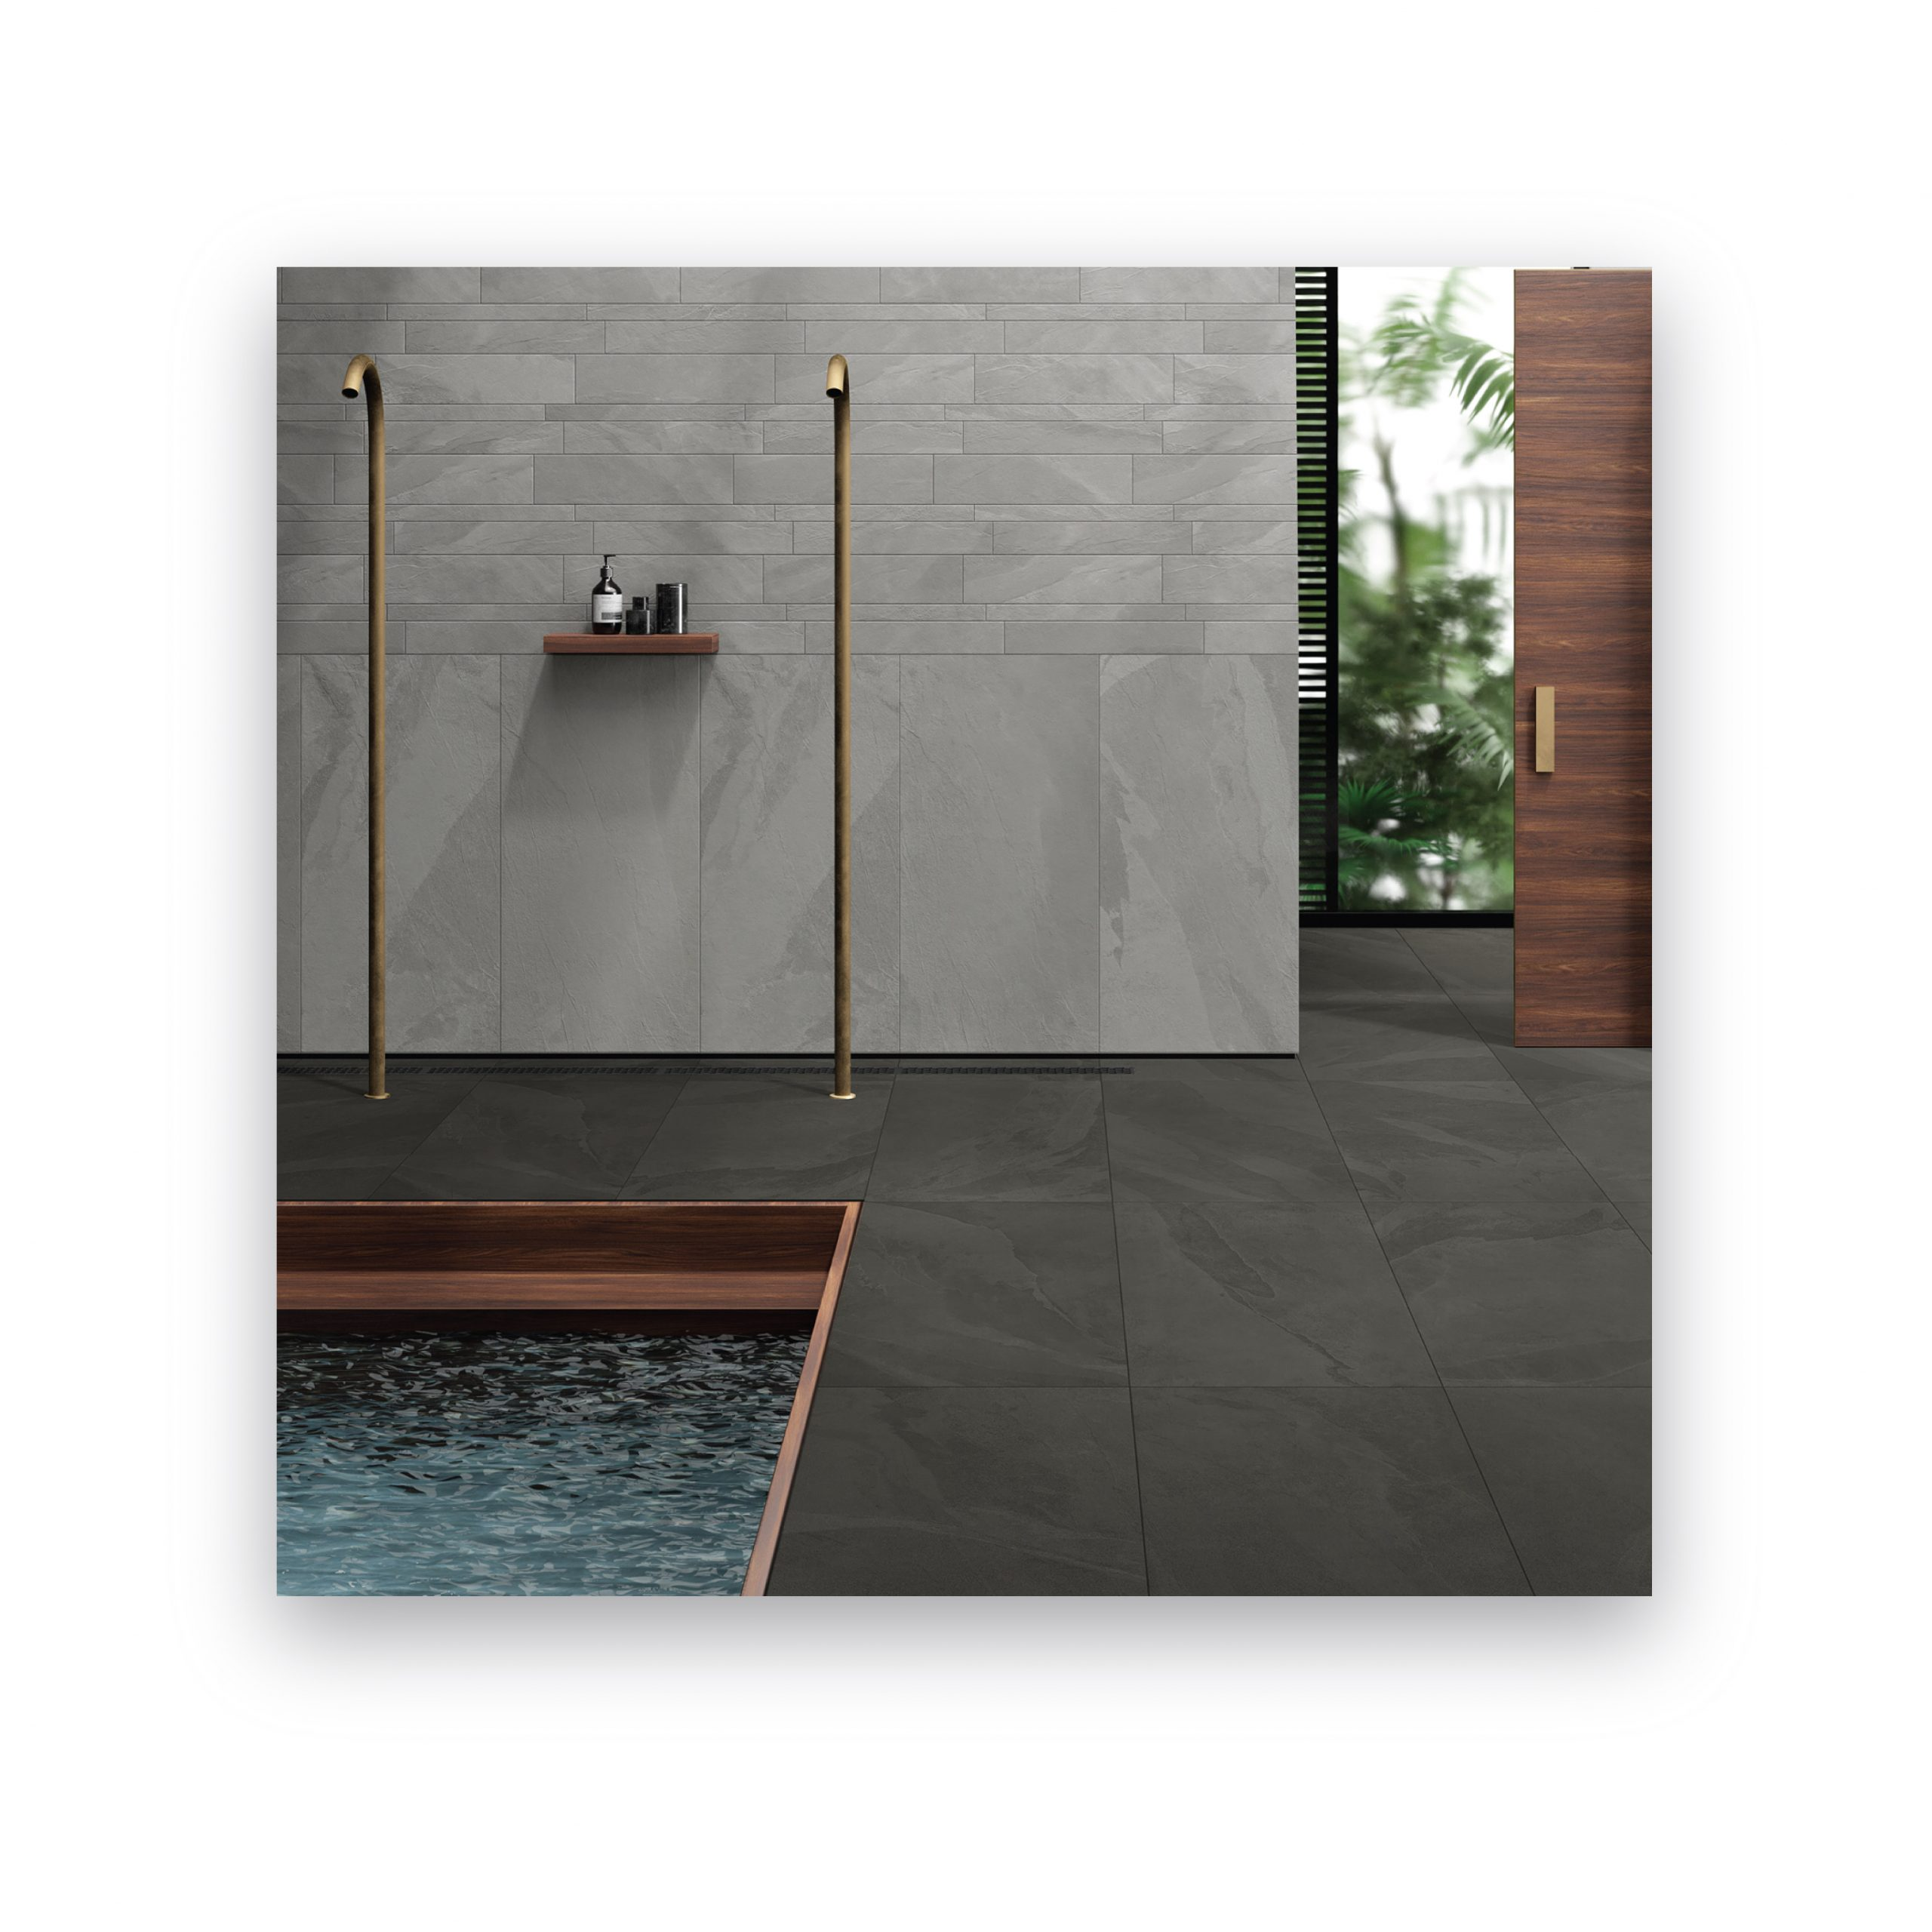 All Natural Stone Stock Material, All Natural Stone Stock Porcelain, Brazilian Slate